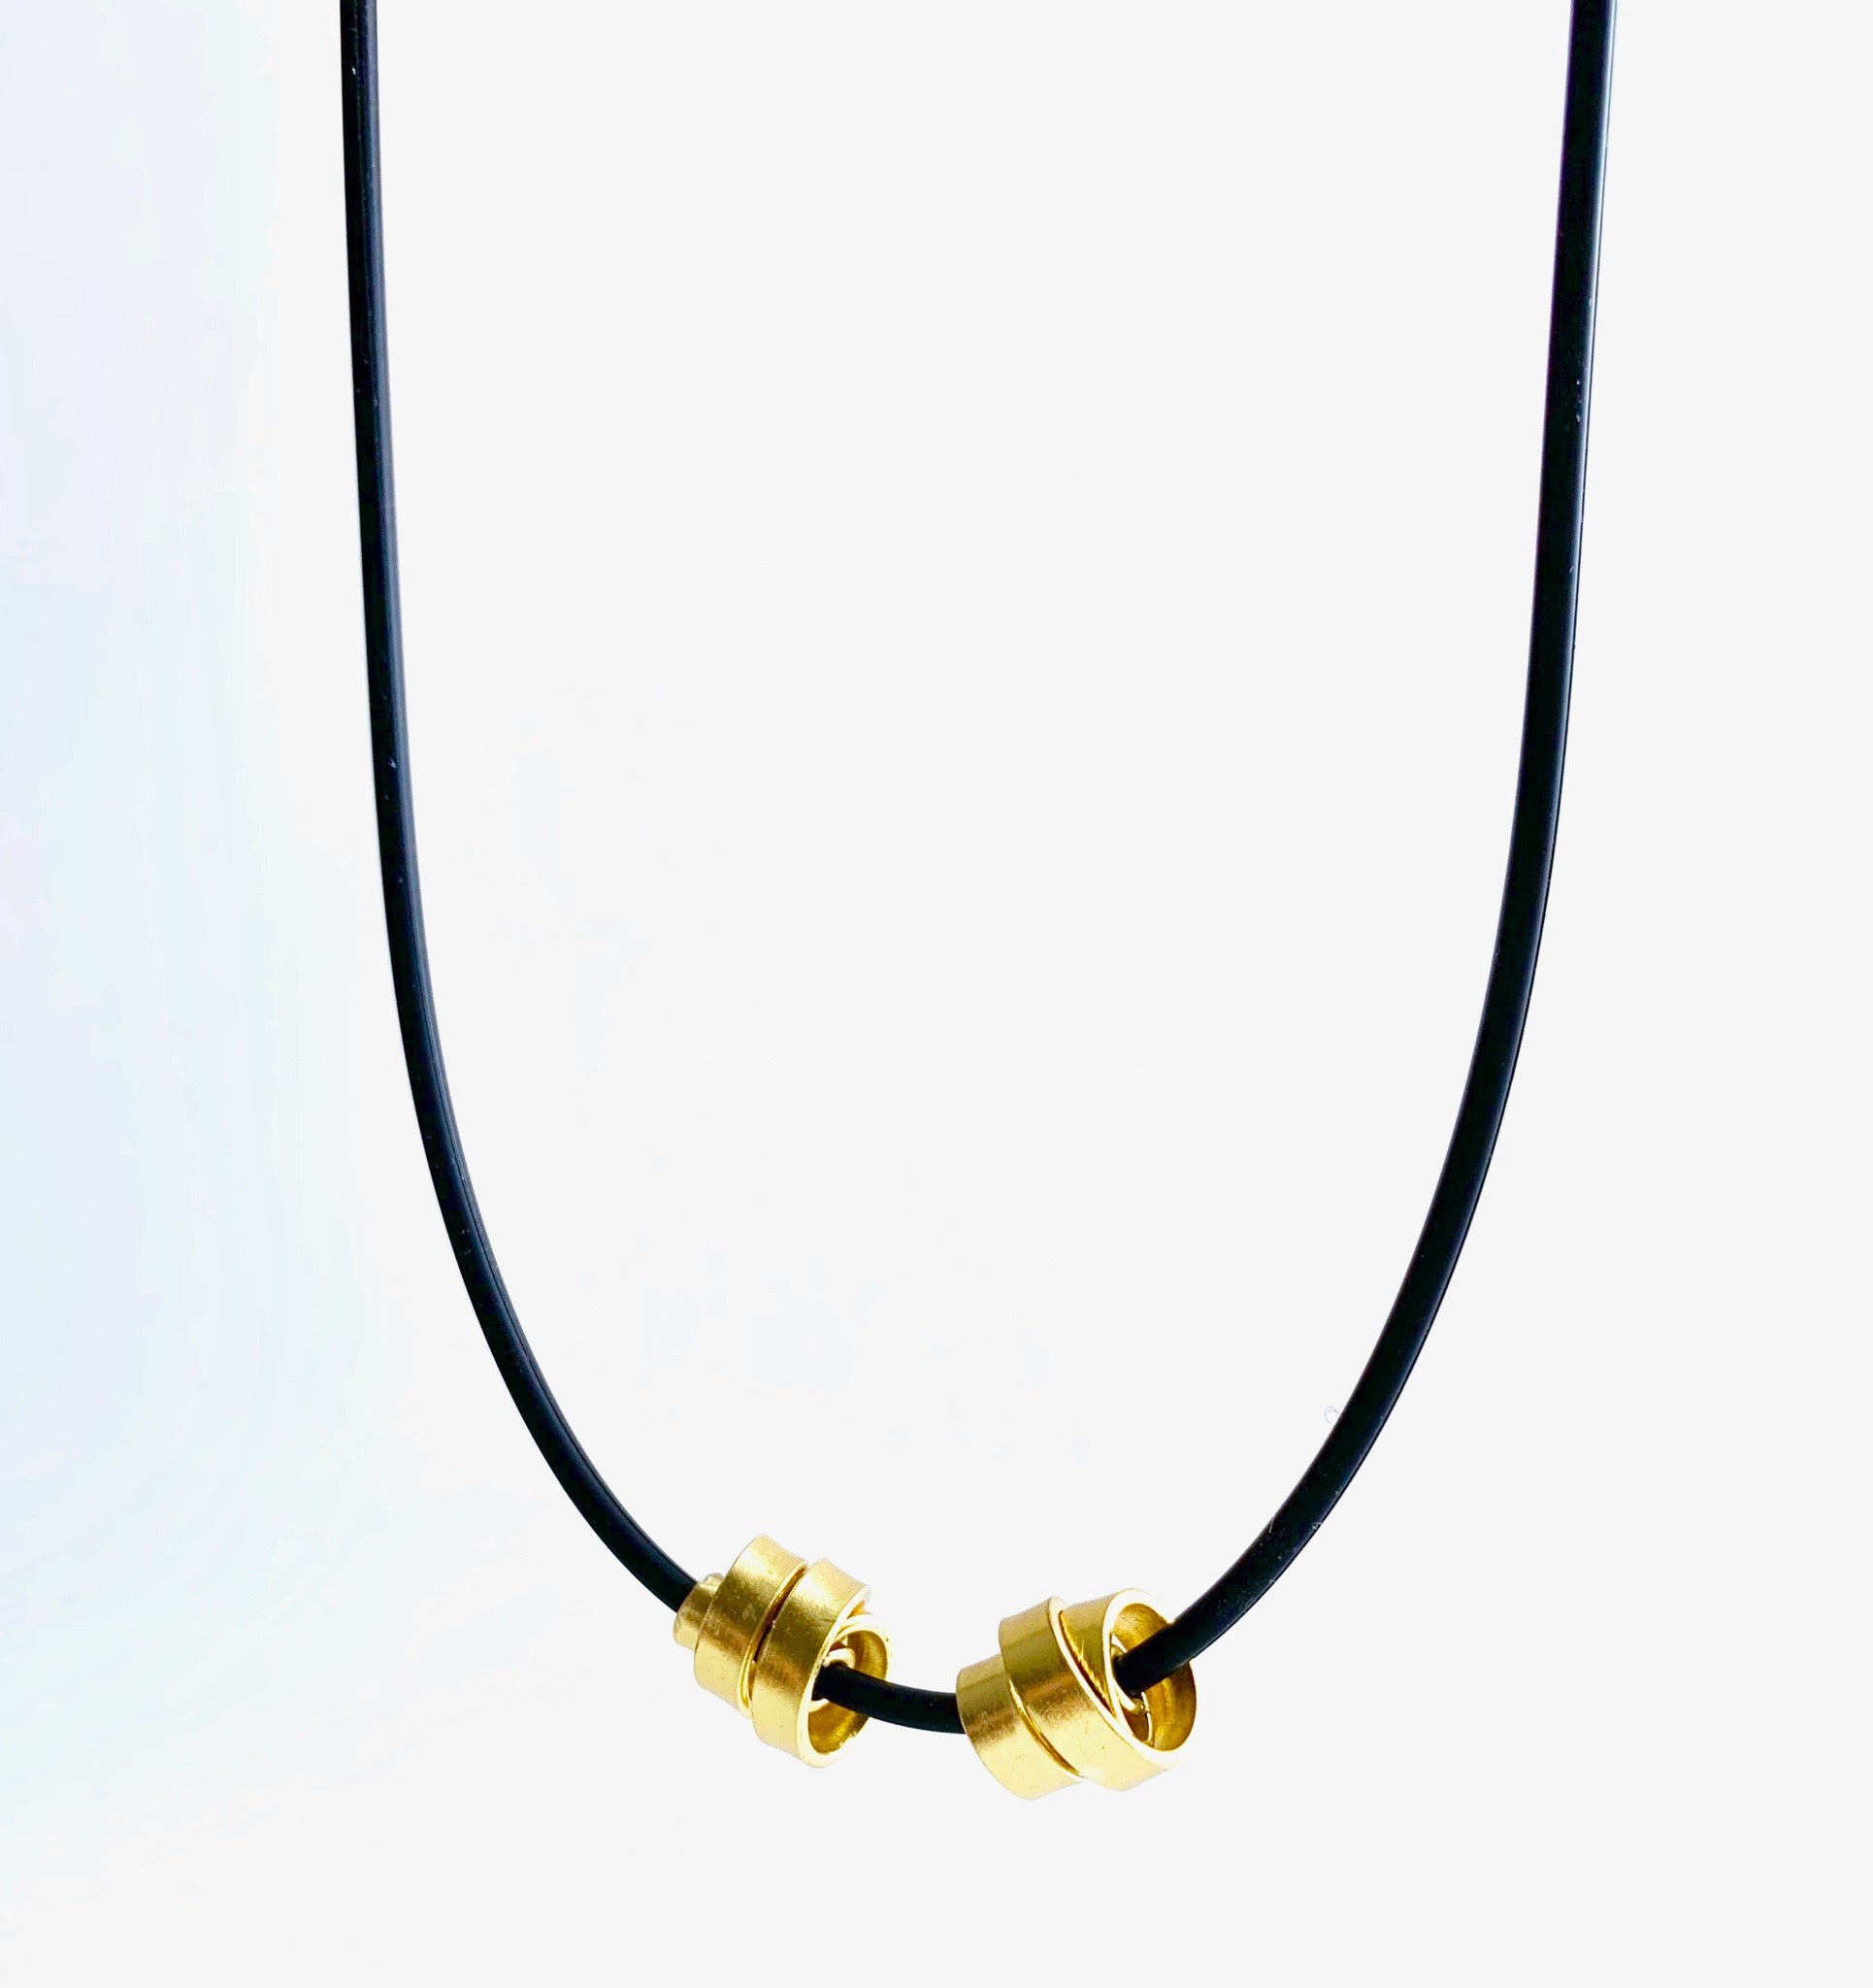 This Rubber Loopt necklace is in thin gold. Made of aluminum wire and hangs on a rubber necklace with an interlocking closure. This piece comes in many variations.